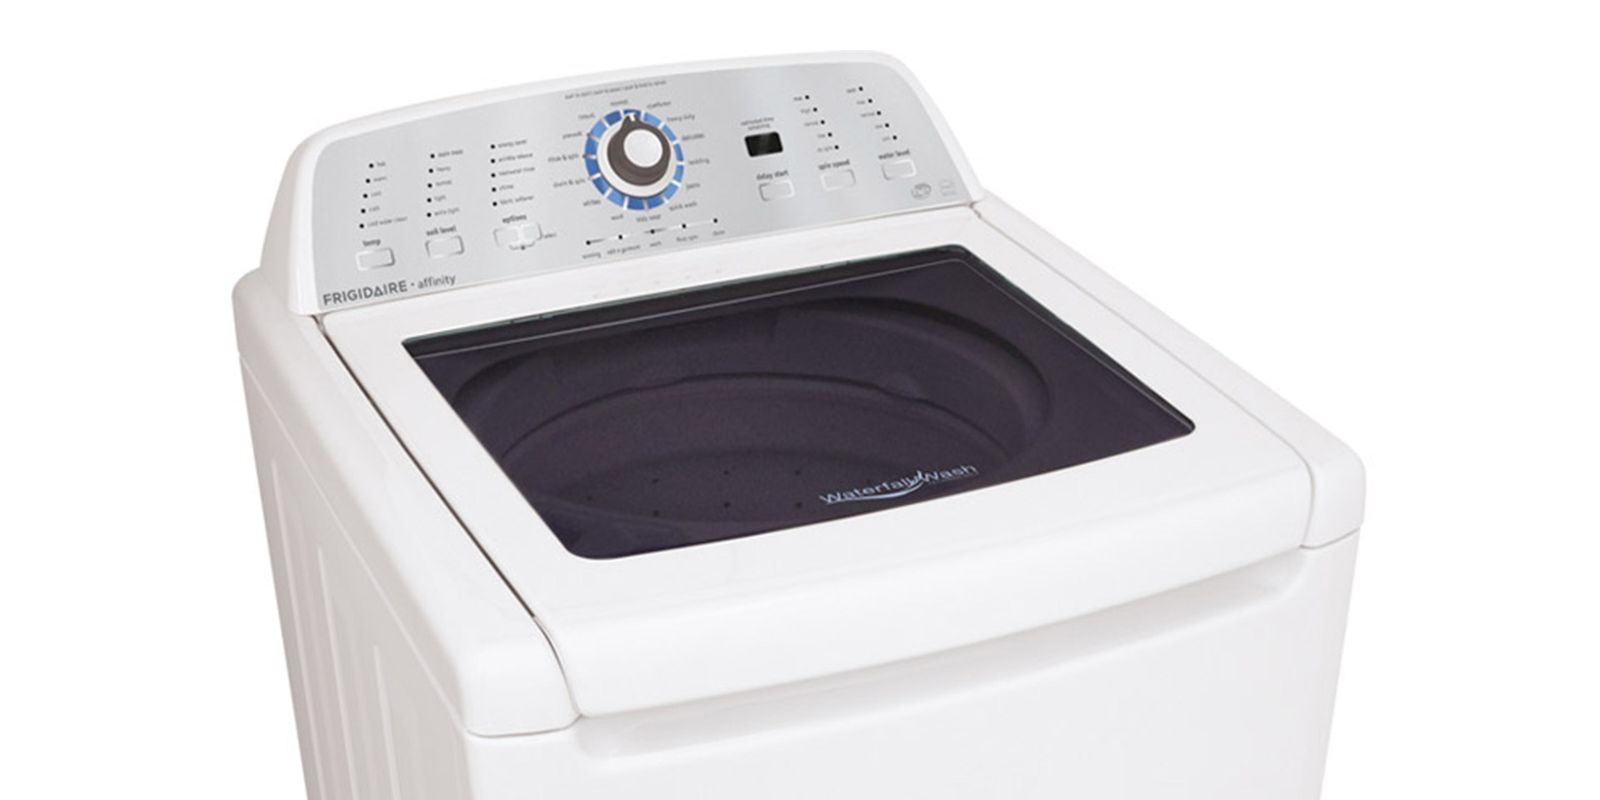 frigidaire 34 cu ft high efficiency top load washer fahe4044mw review